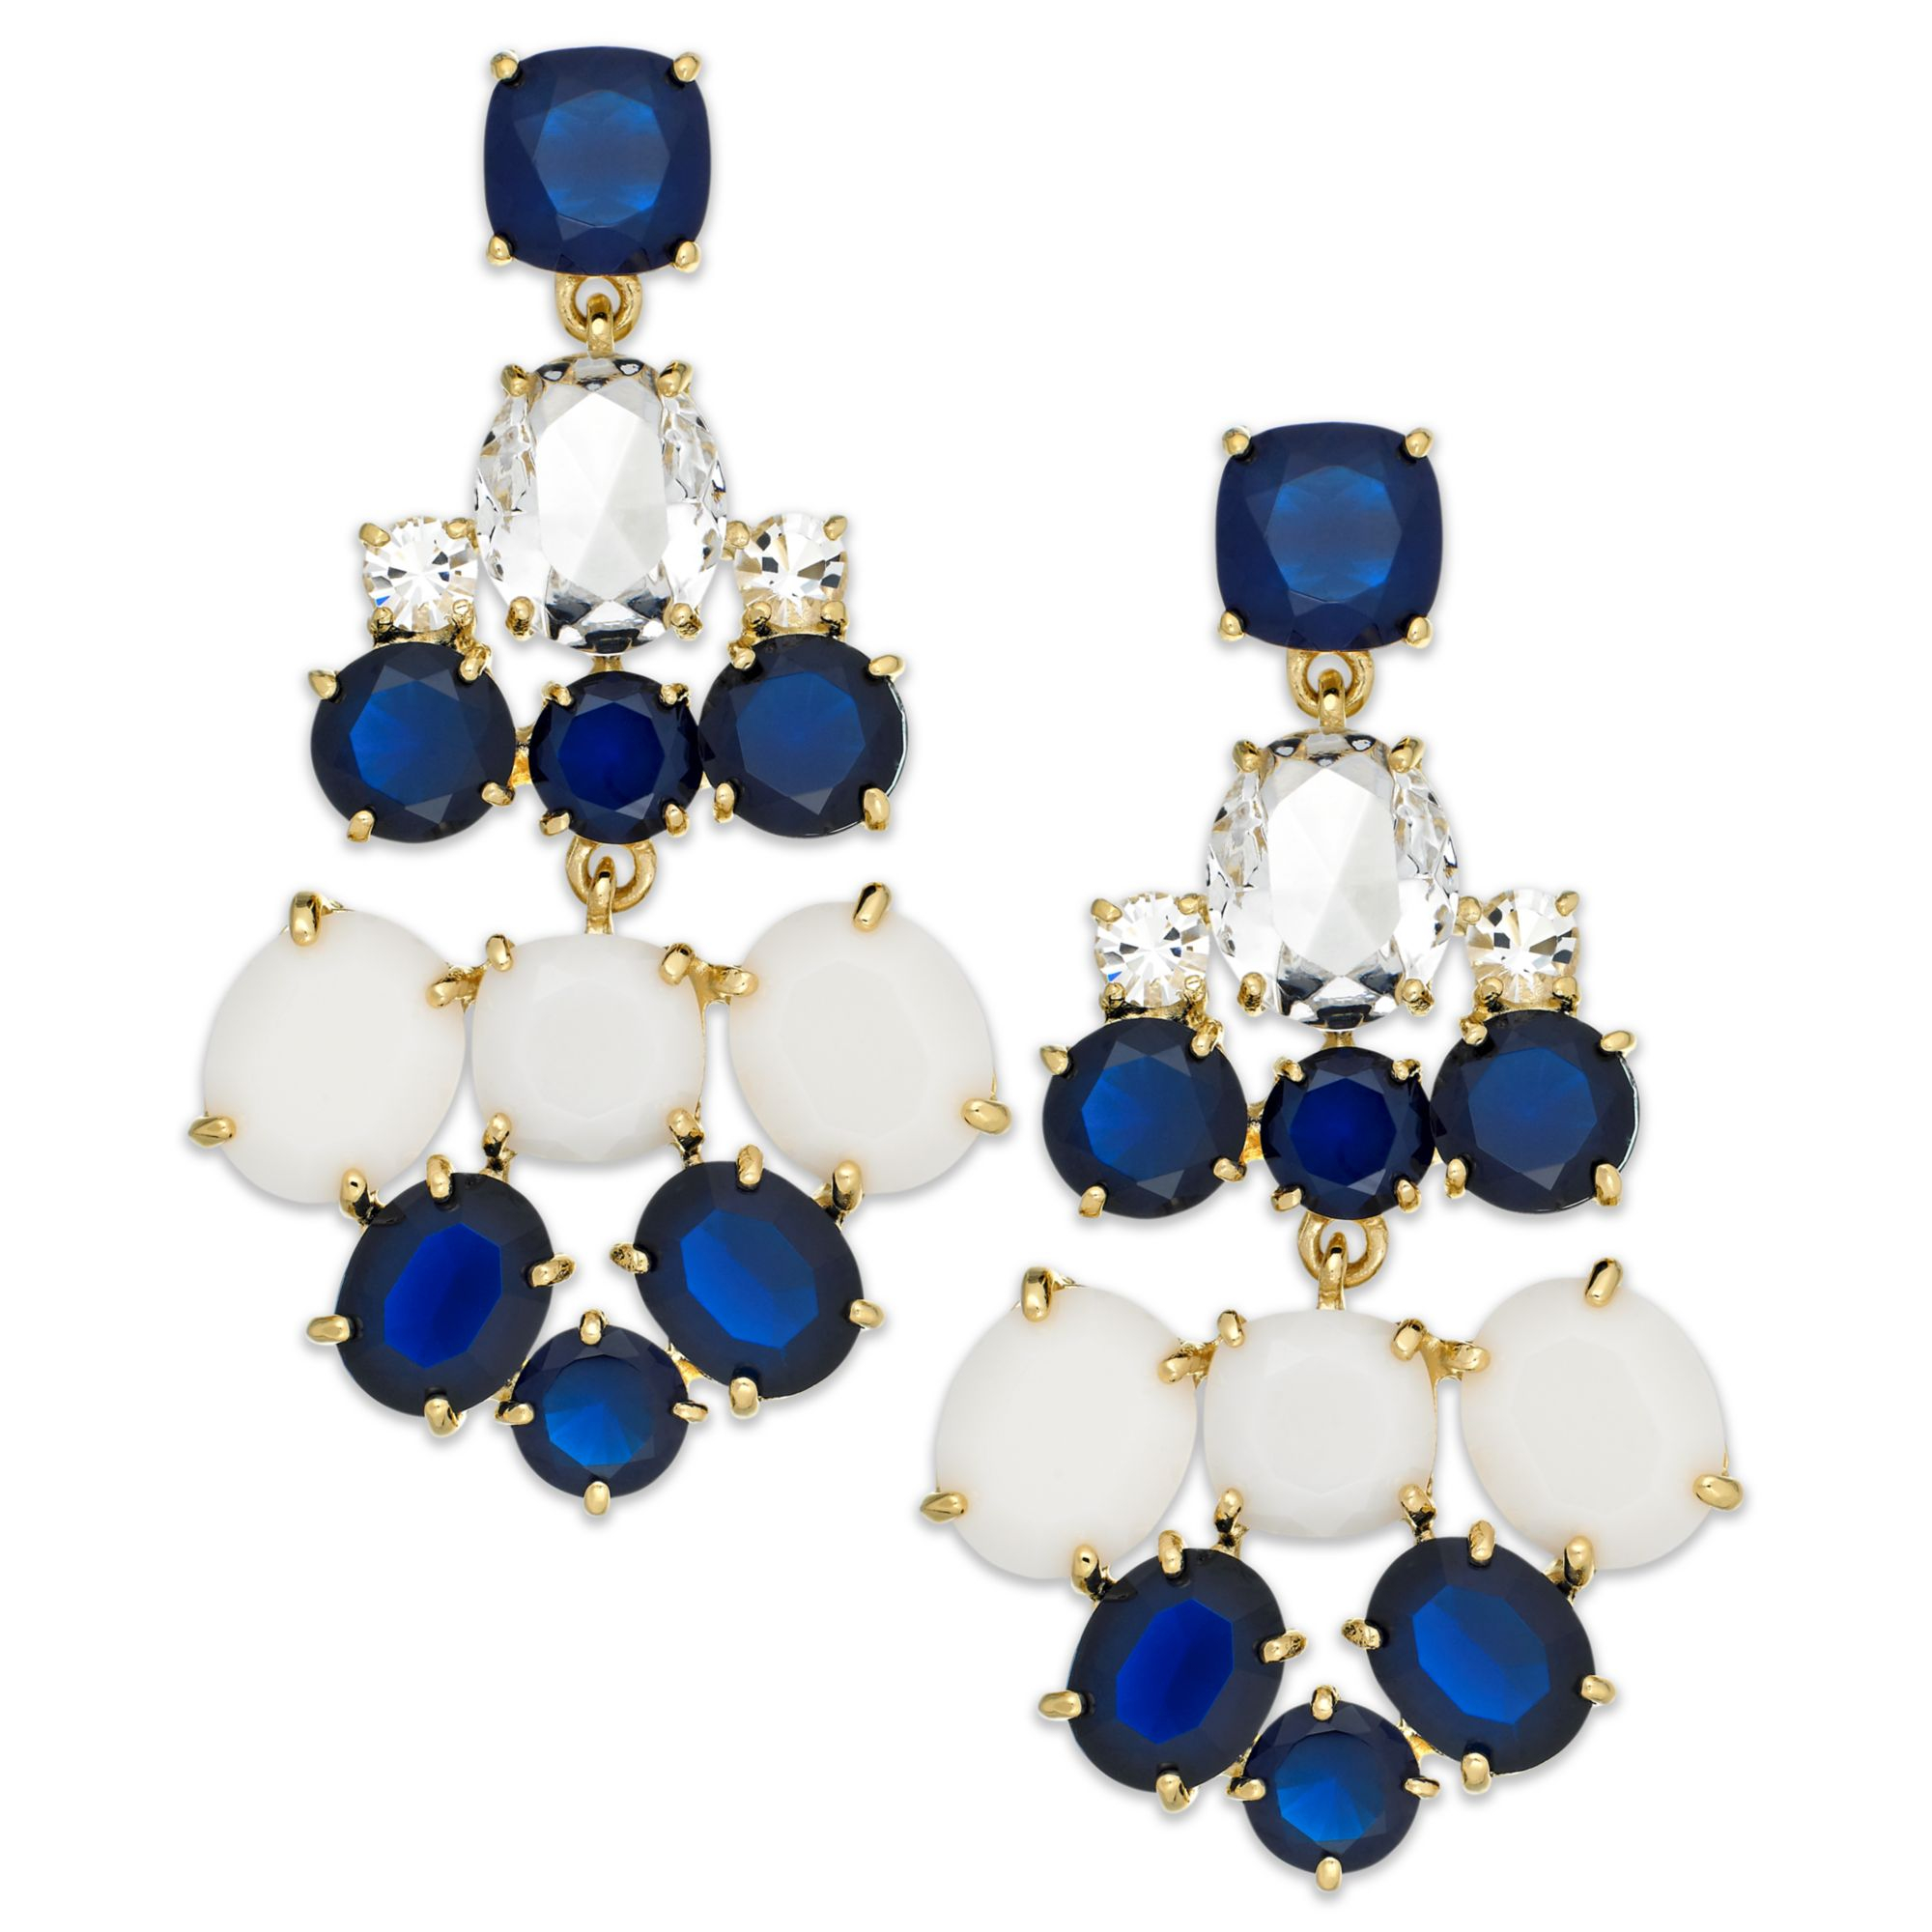 Kate spade new york Goldtone Blue And White Stone Chandelier – Gold Tone Chandelier Earrings